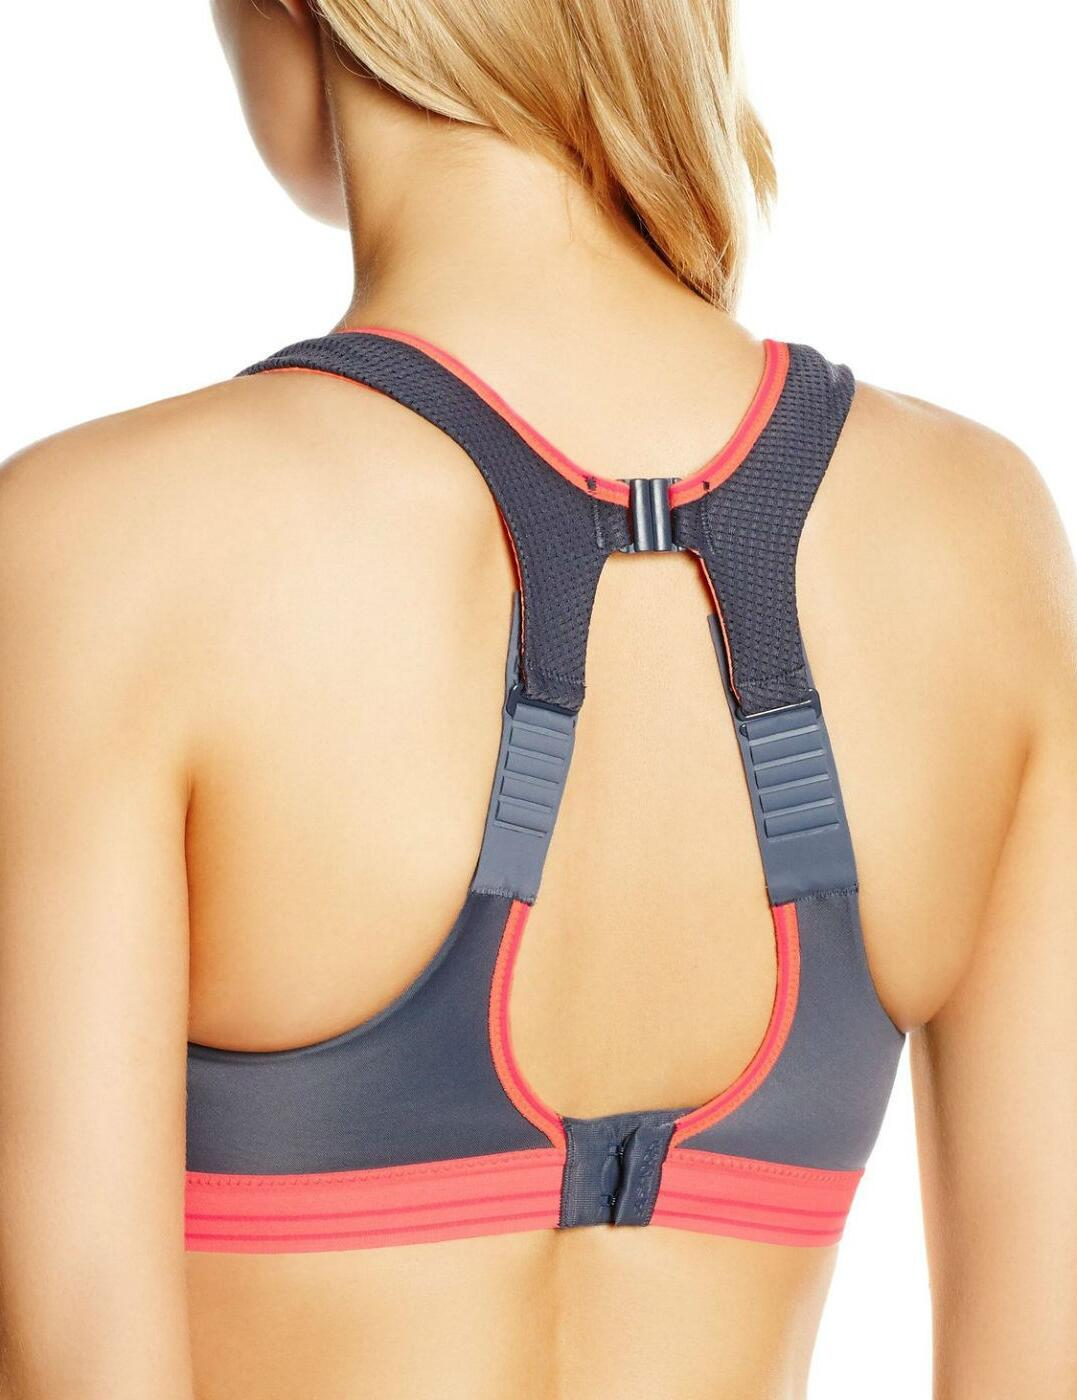 Shock-Absorber-Sports-Bra-S5044-Non-Wired-High-Impact-Run-Sports-Bra thumbnail 21